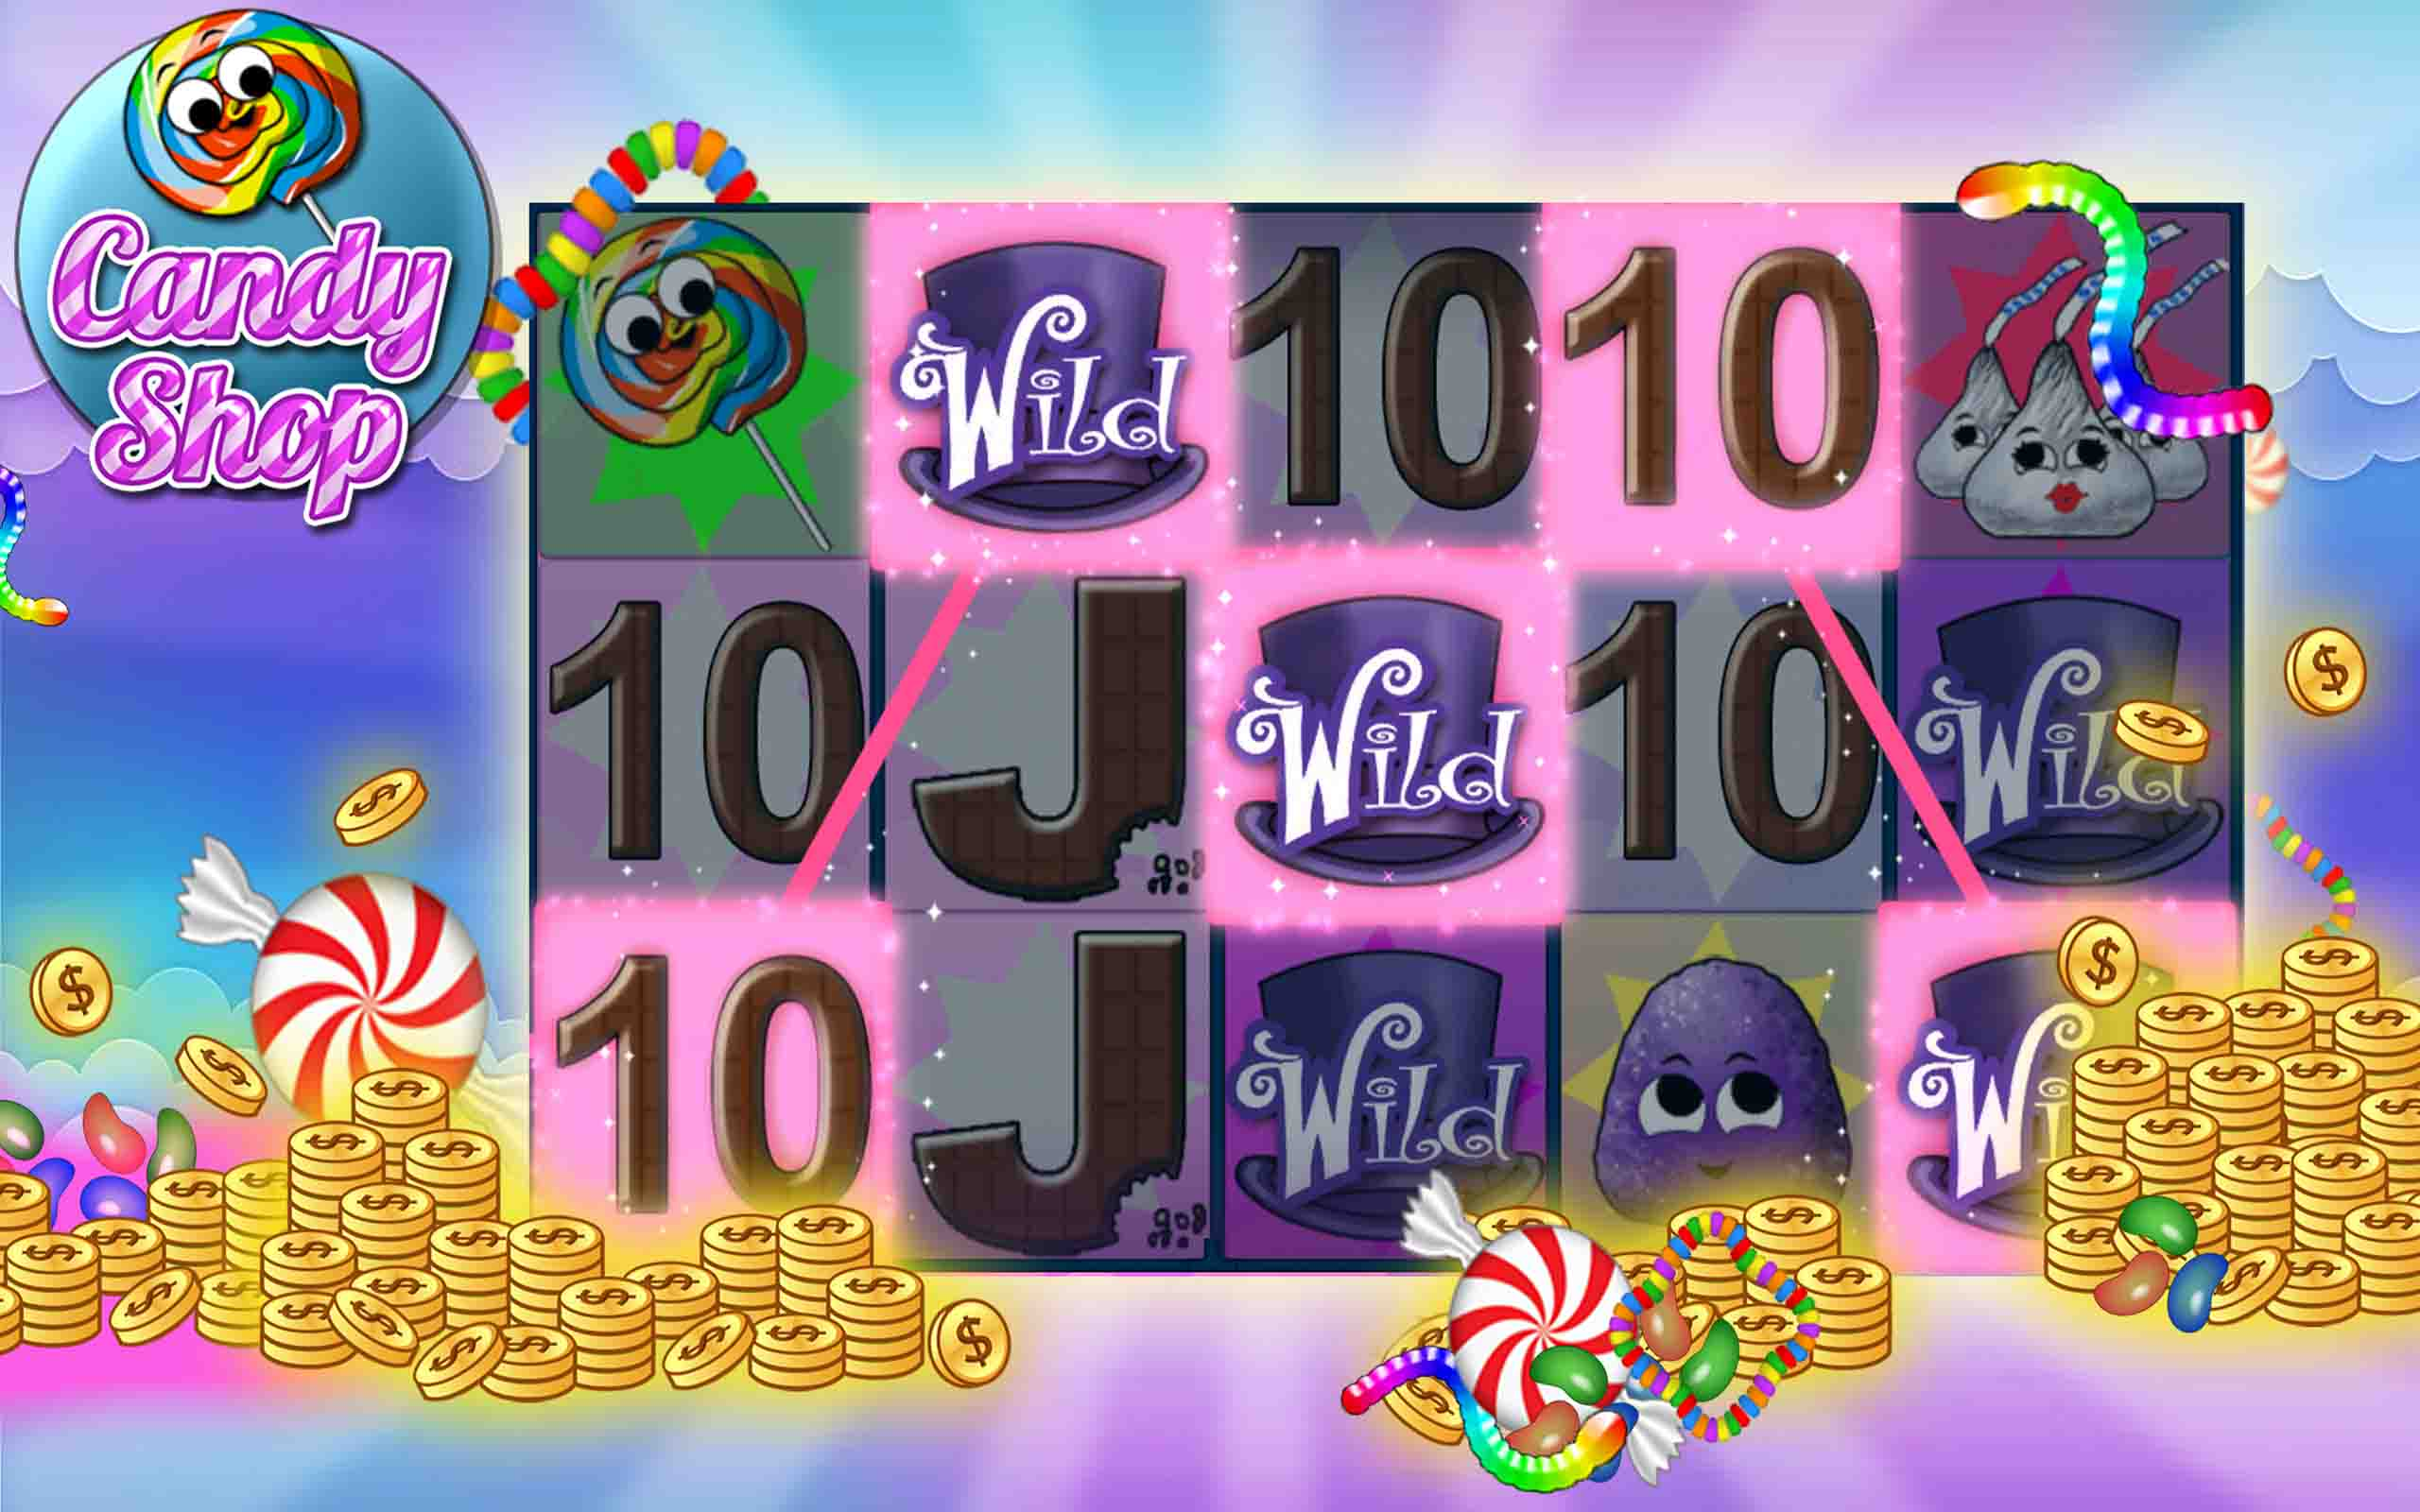 Golden Rocket Slot - Spielen Sie die Online-Version gratis